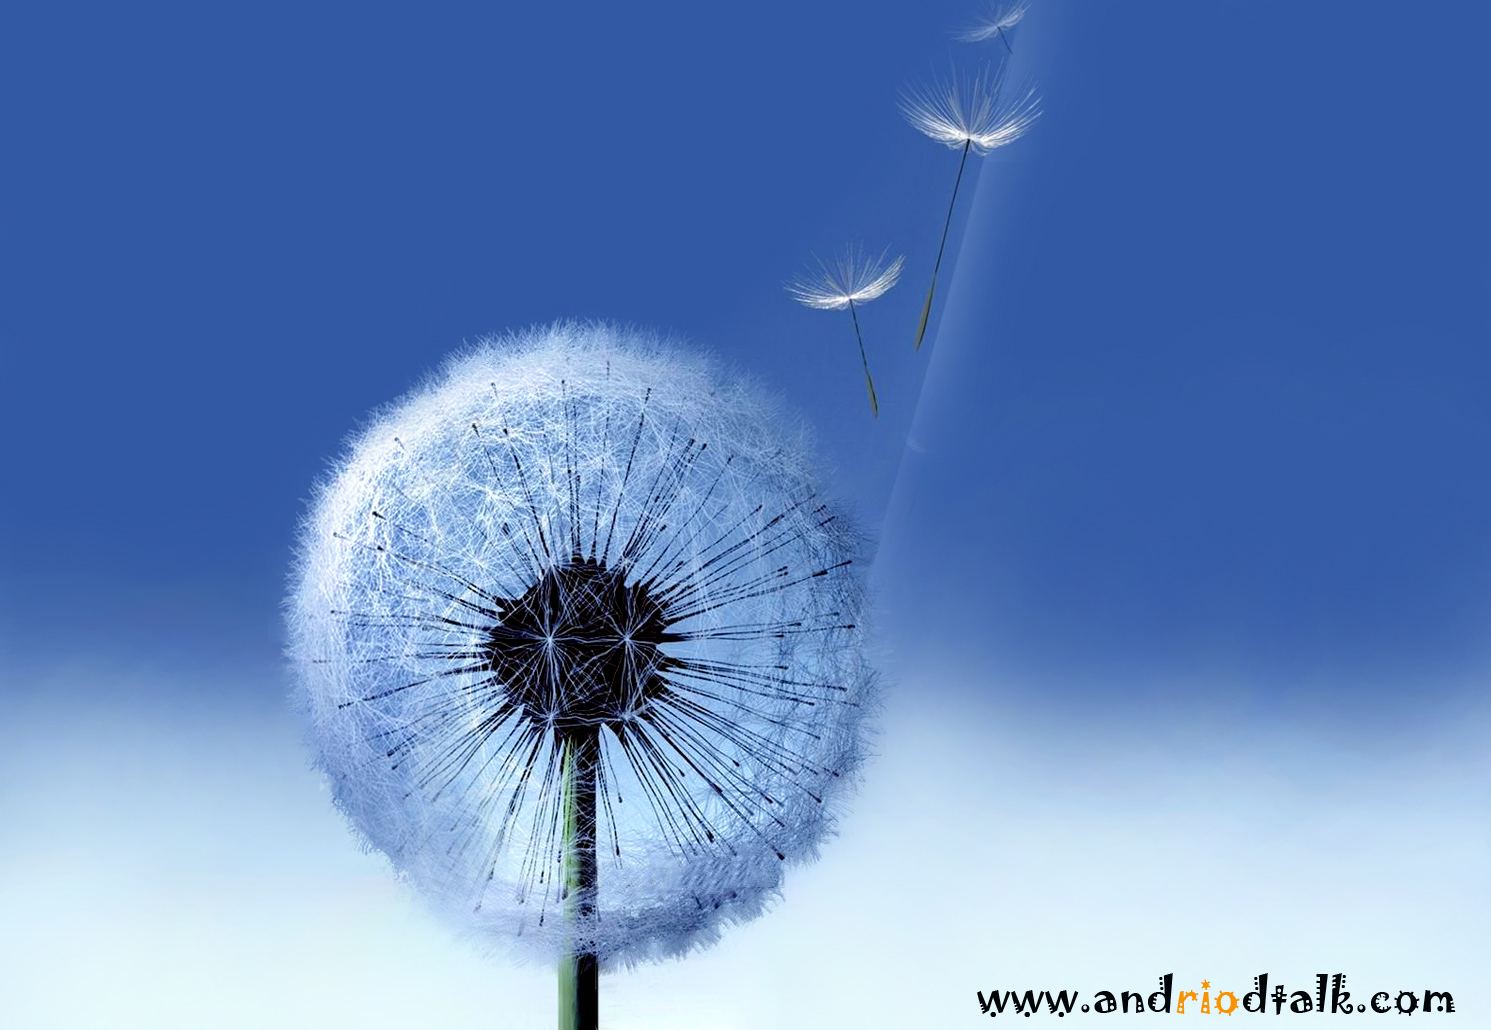 http://2.bp.blogspot.com/-PotGygMr3eU/UQsHyjNkxiI/AAAAAAAABYQ/UVDh1pyyZkQ/s1600/HD-+galaxy-s3-Dandelion+wallpaper+for+PC+desktop+wallpaper.jpg